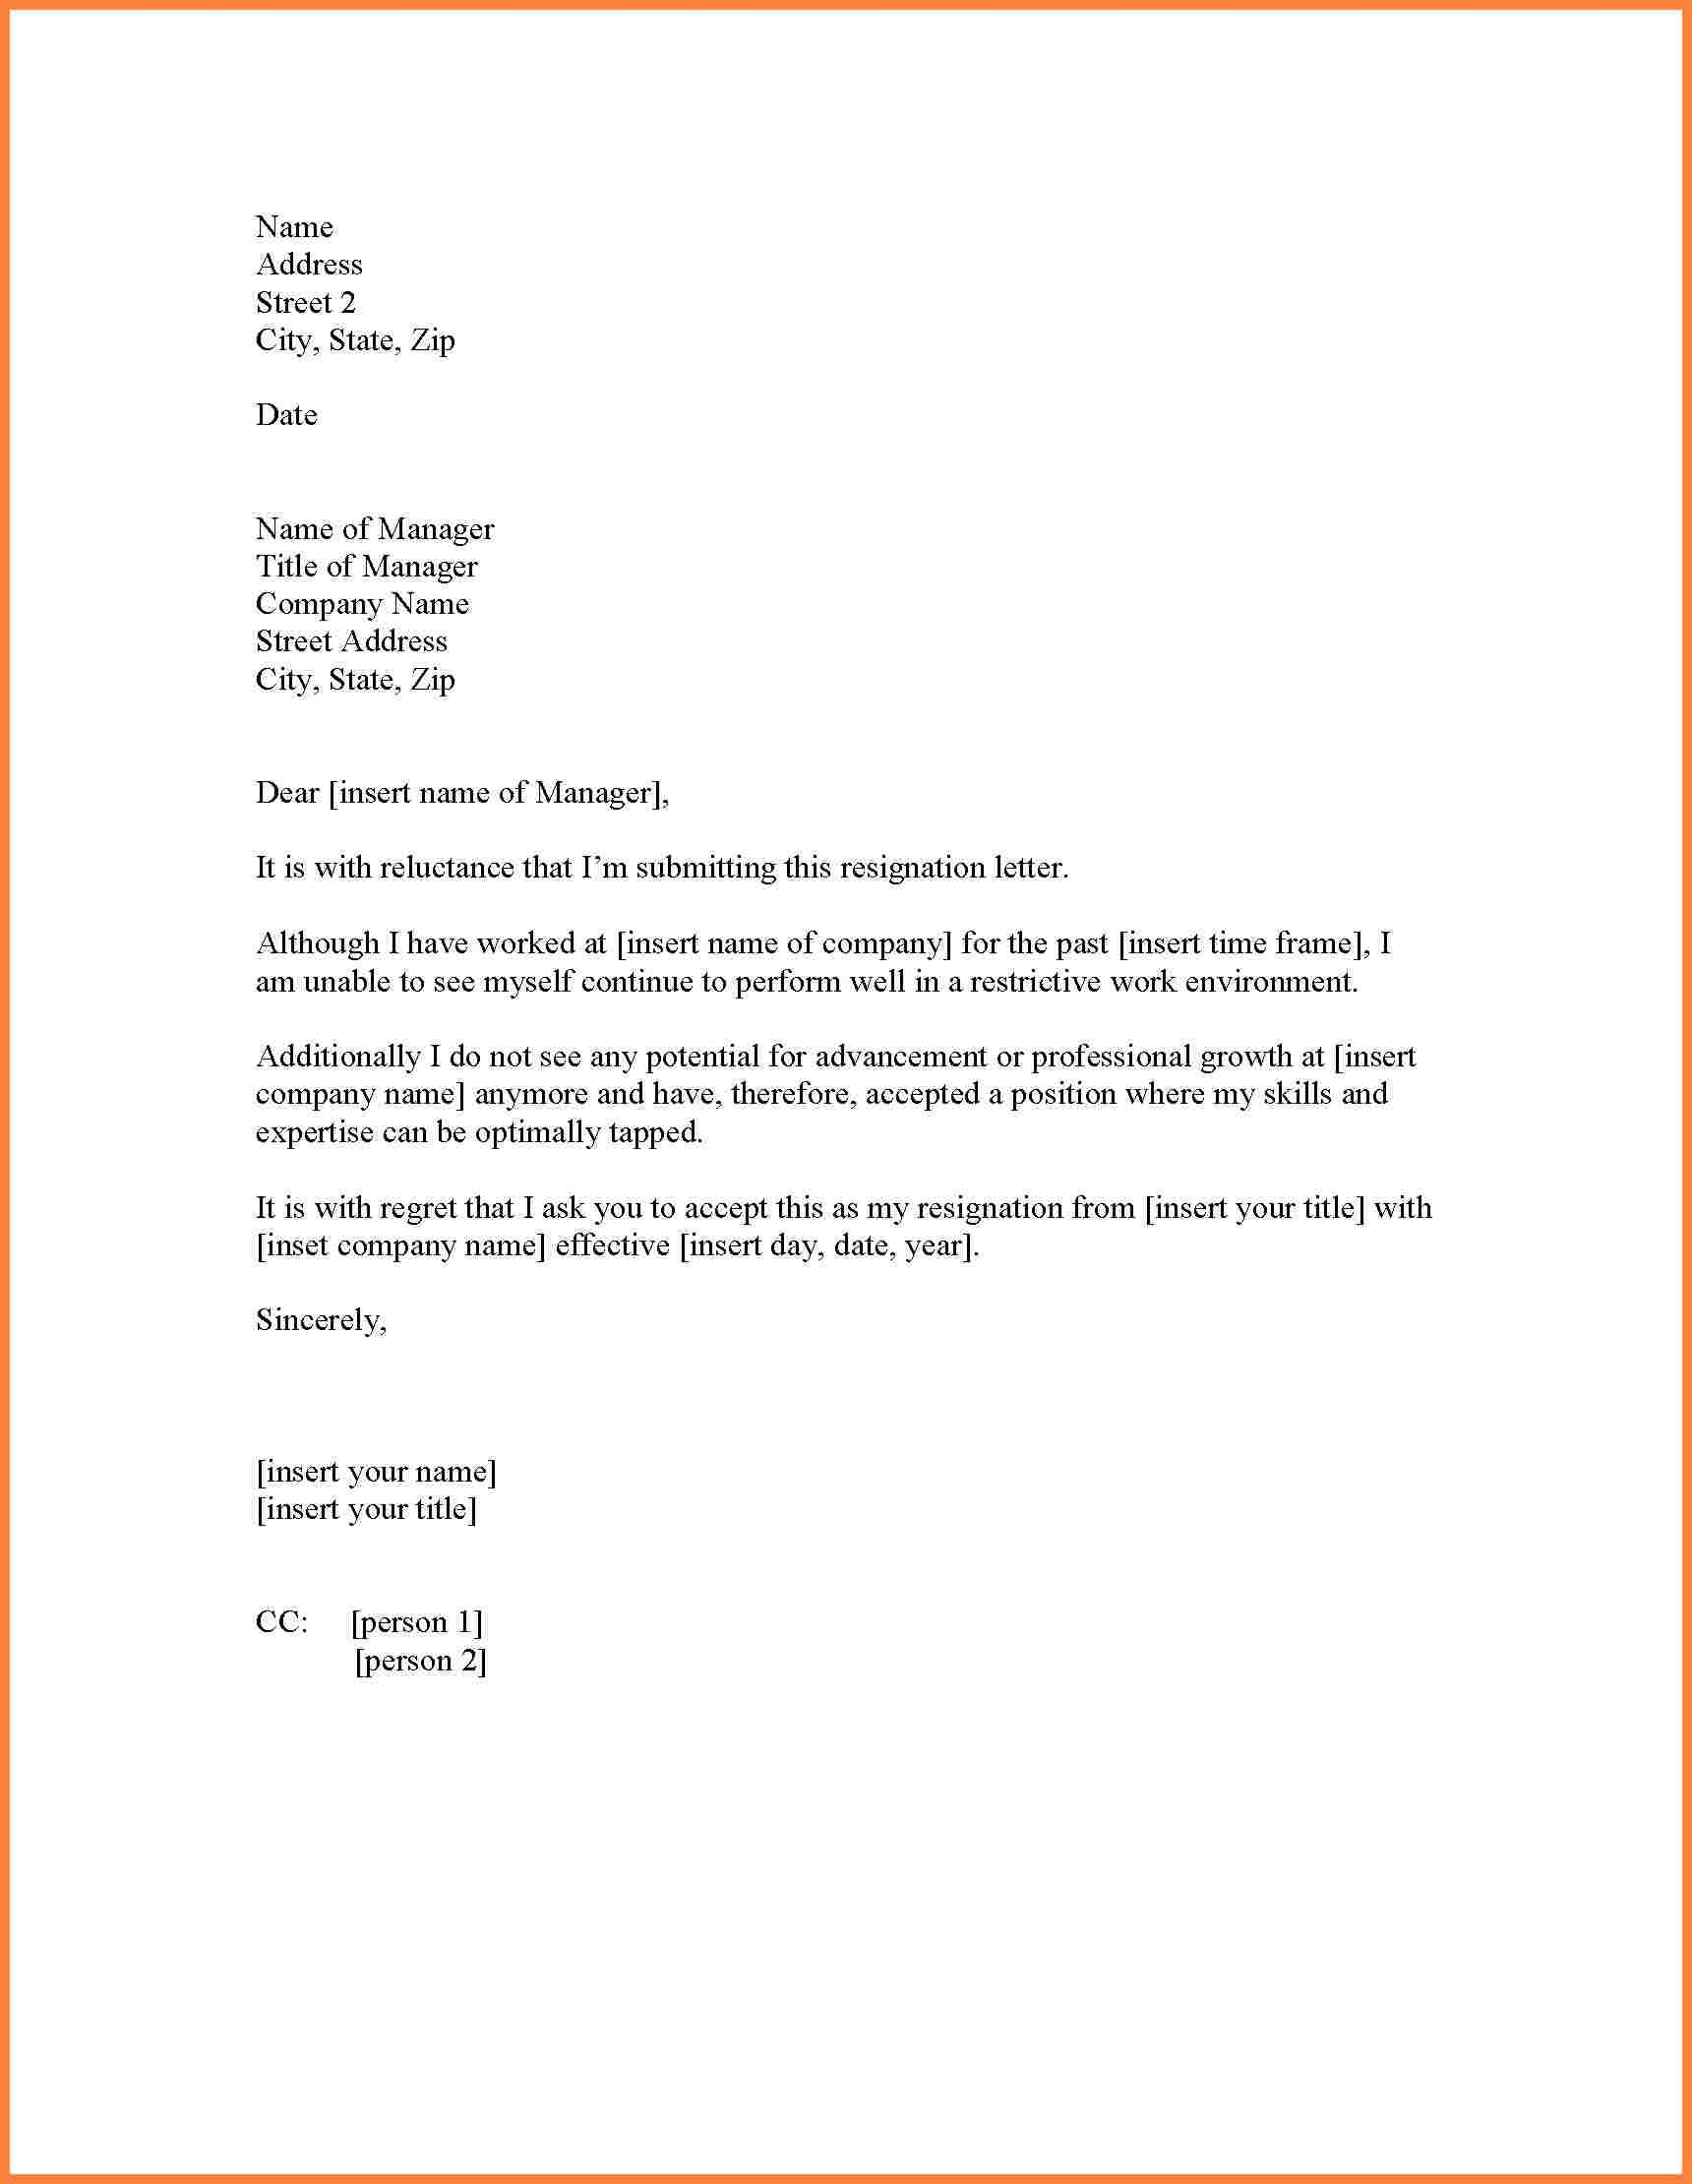 immediate resignation letter template best resignation letter for personal reasons resignation letter for